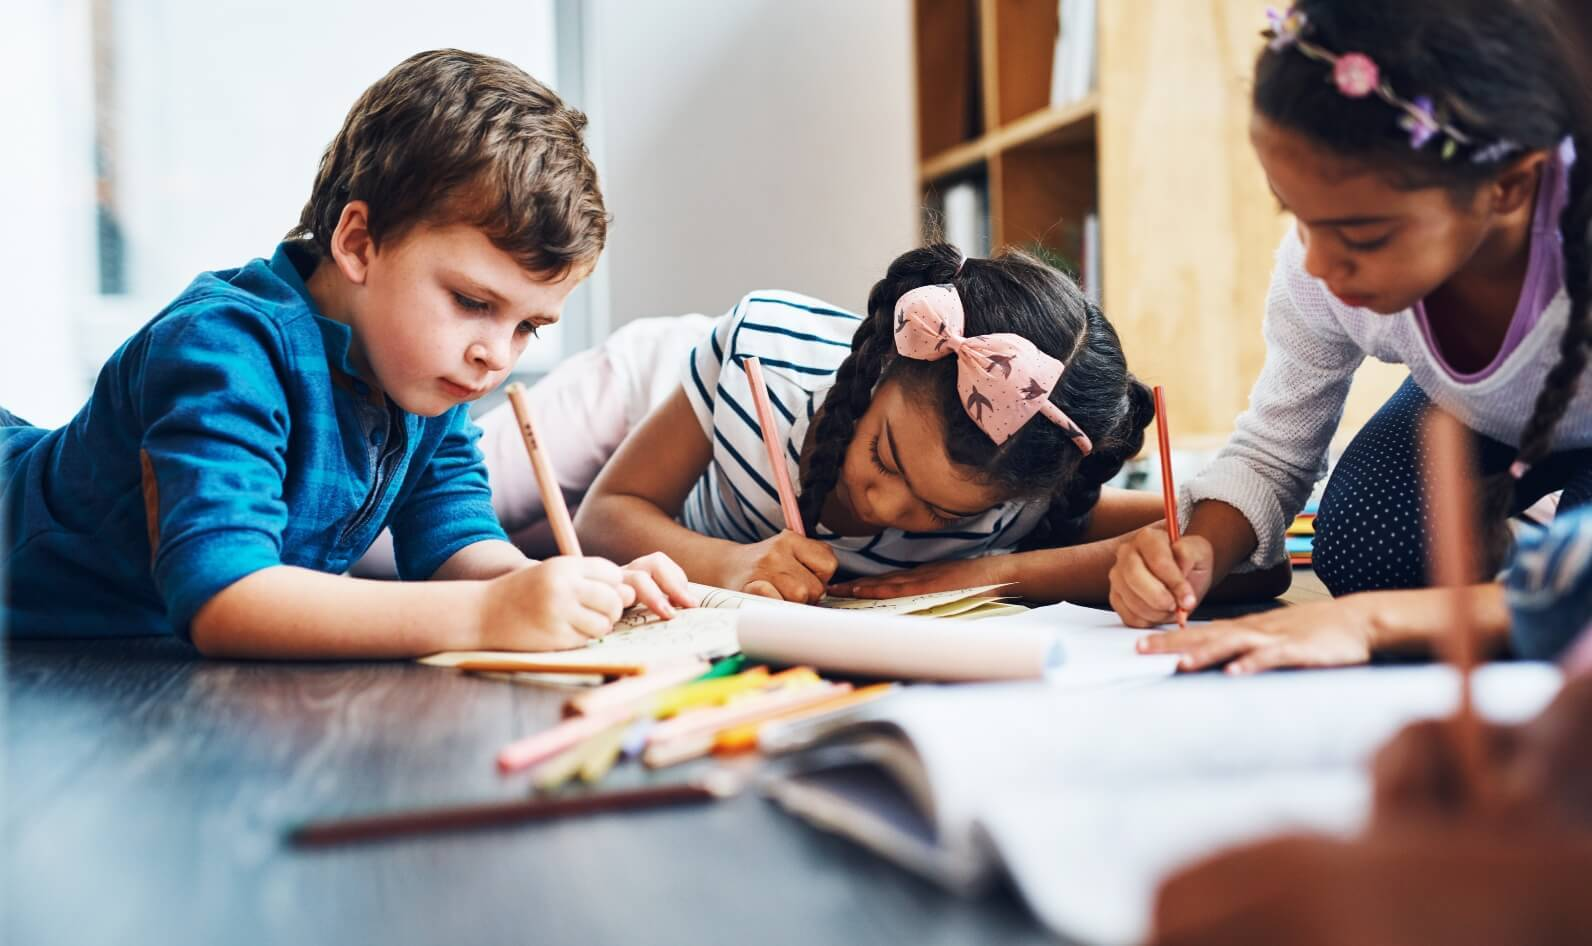 Improving Kids Cognitive Skills Though >> The Importance Of Art In Child Development Pbs Kids For Parents